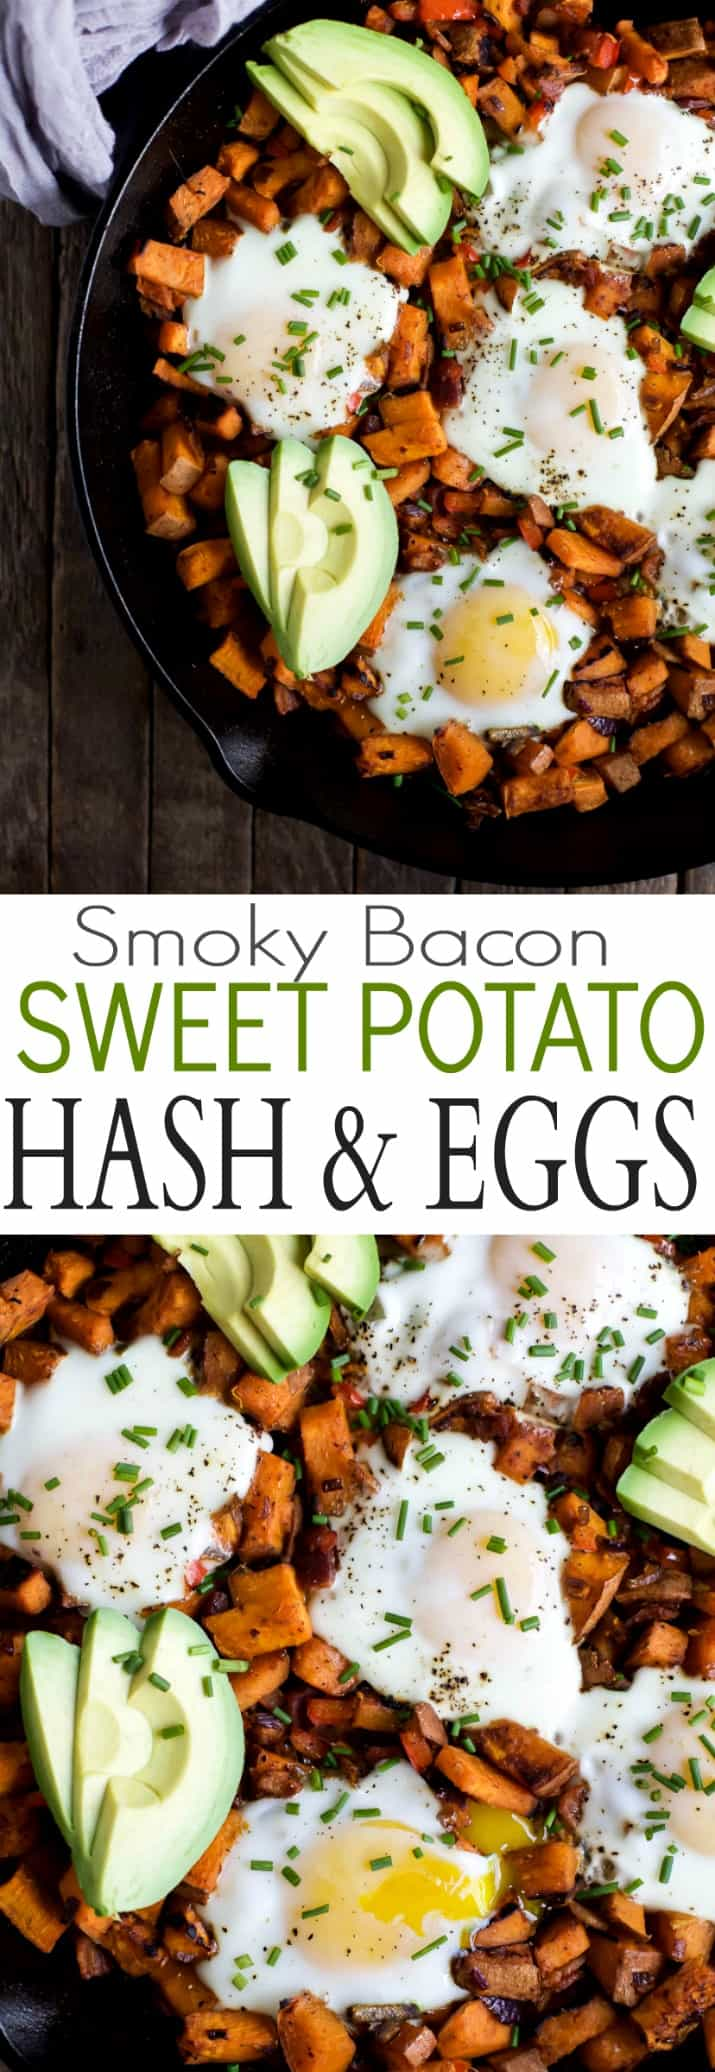 Smoky Bacon Sweet Potato Hash & Eggs - a great 30 minute recipe that's paleo & gluten free! I guarantee you'll want to devour it for breakfast, lunch, and dinner!   joyfulhealthyeats.com